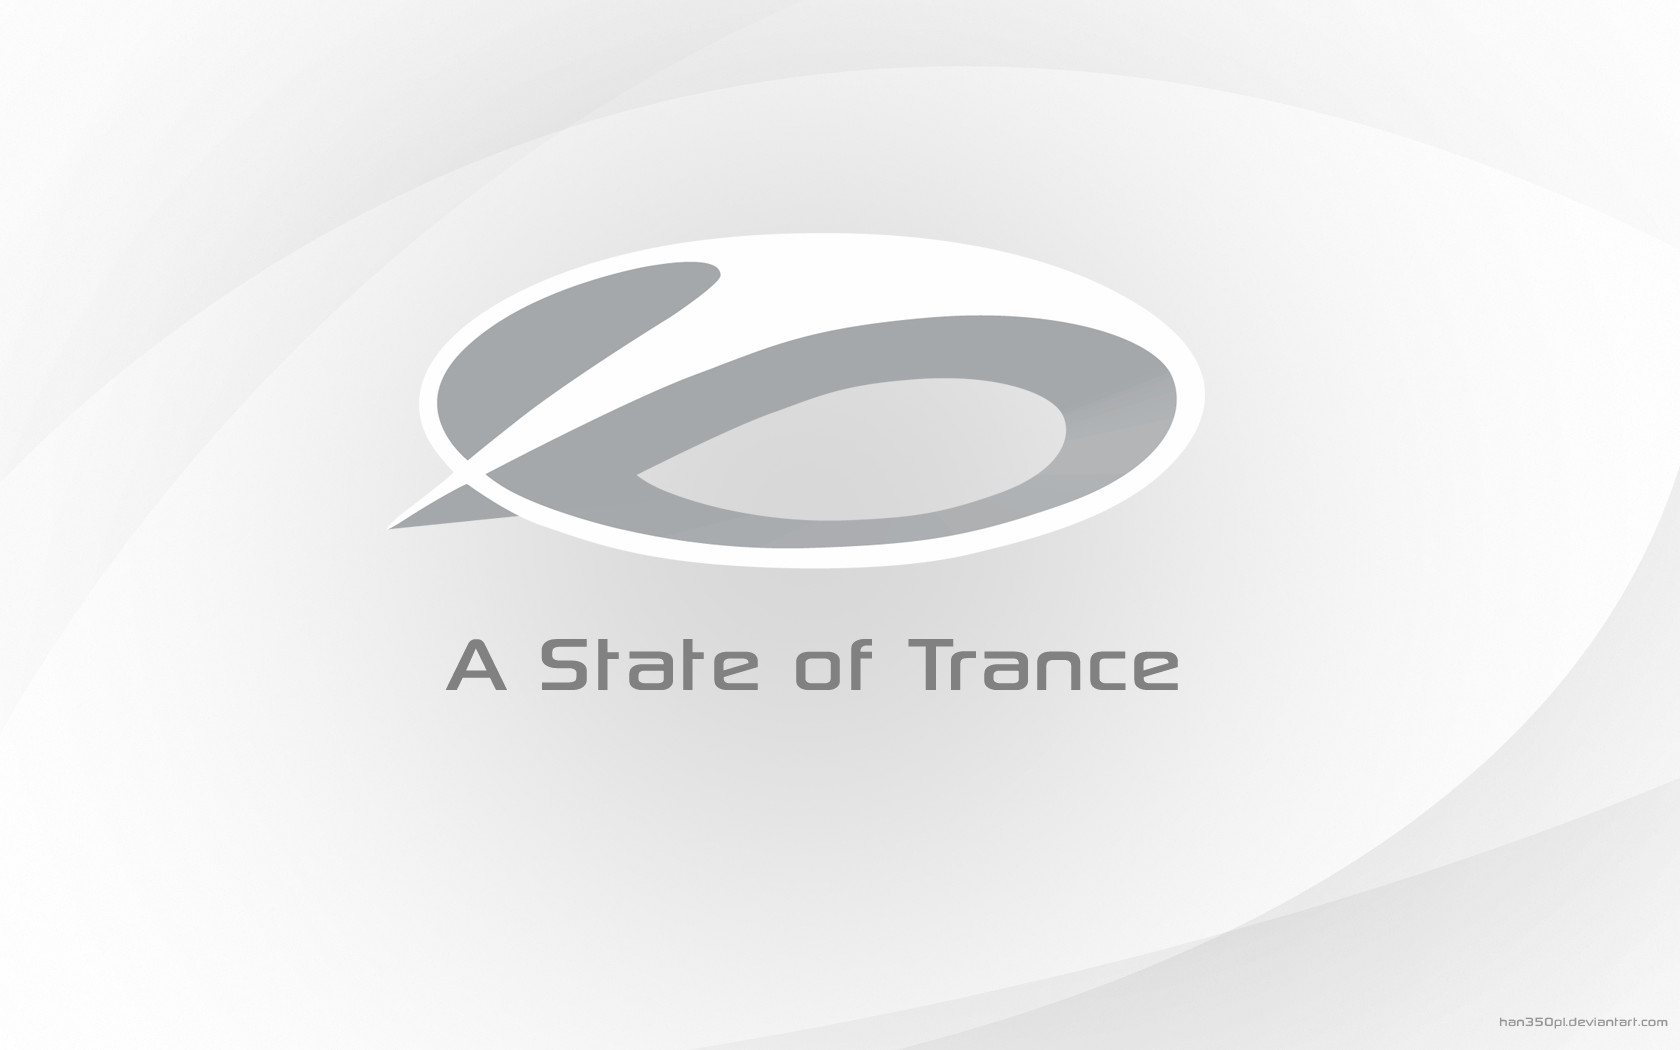 state of trance wallpaper by han350pl customization wallpaper other 1680x1050